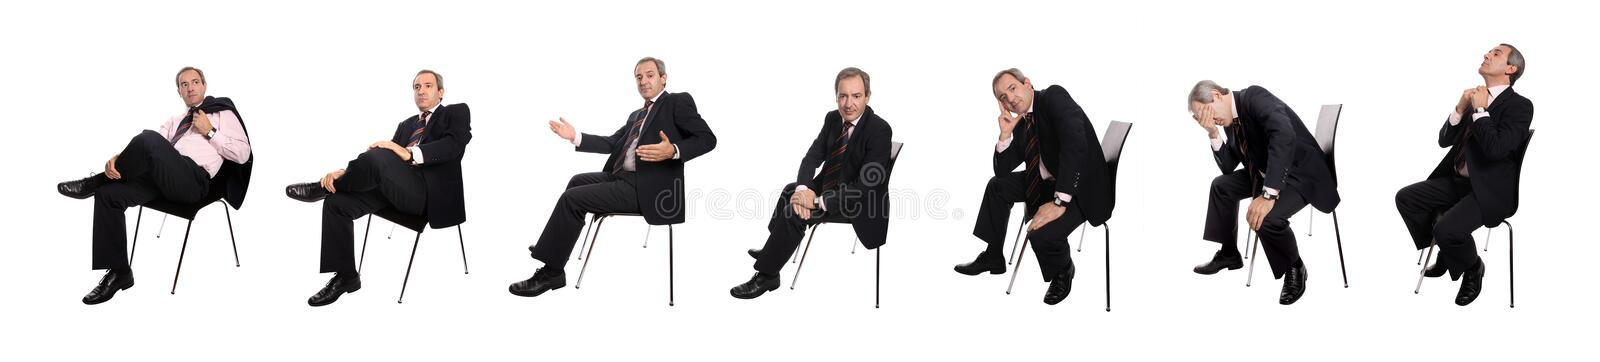 Businessman images. Group of businessman images sitting in several positions isolated on white stock photos